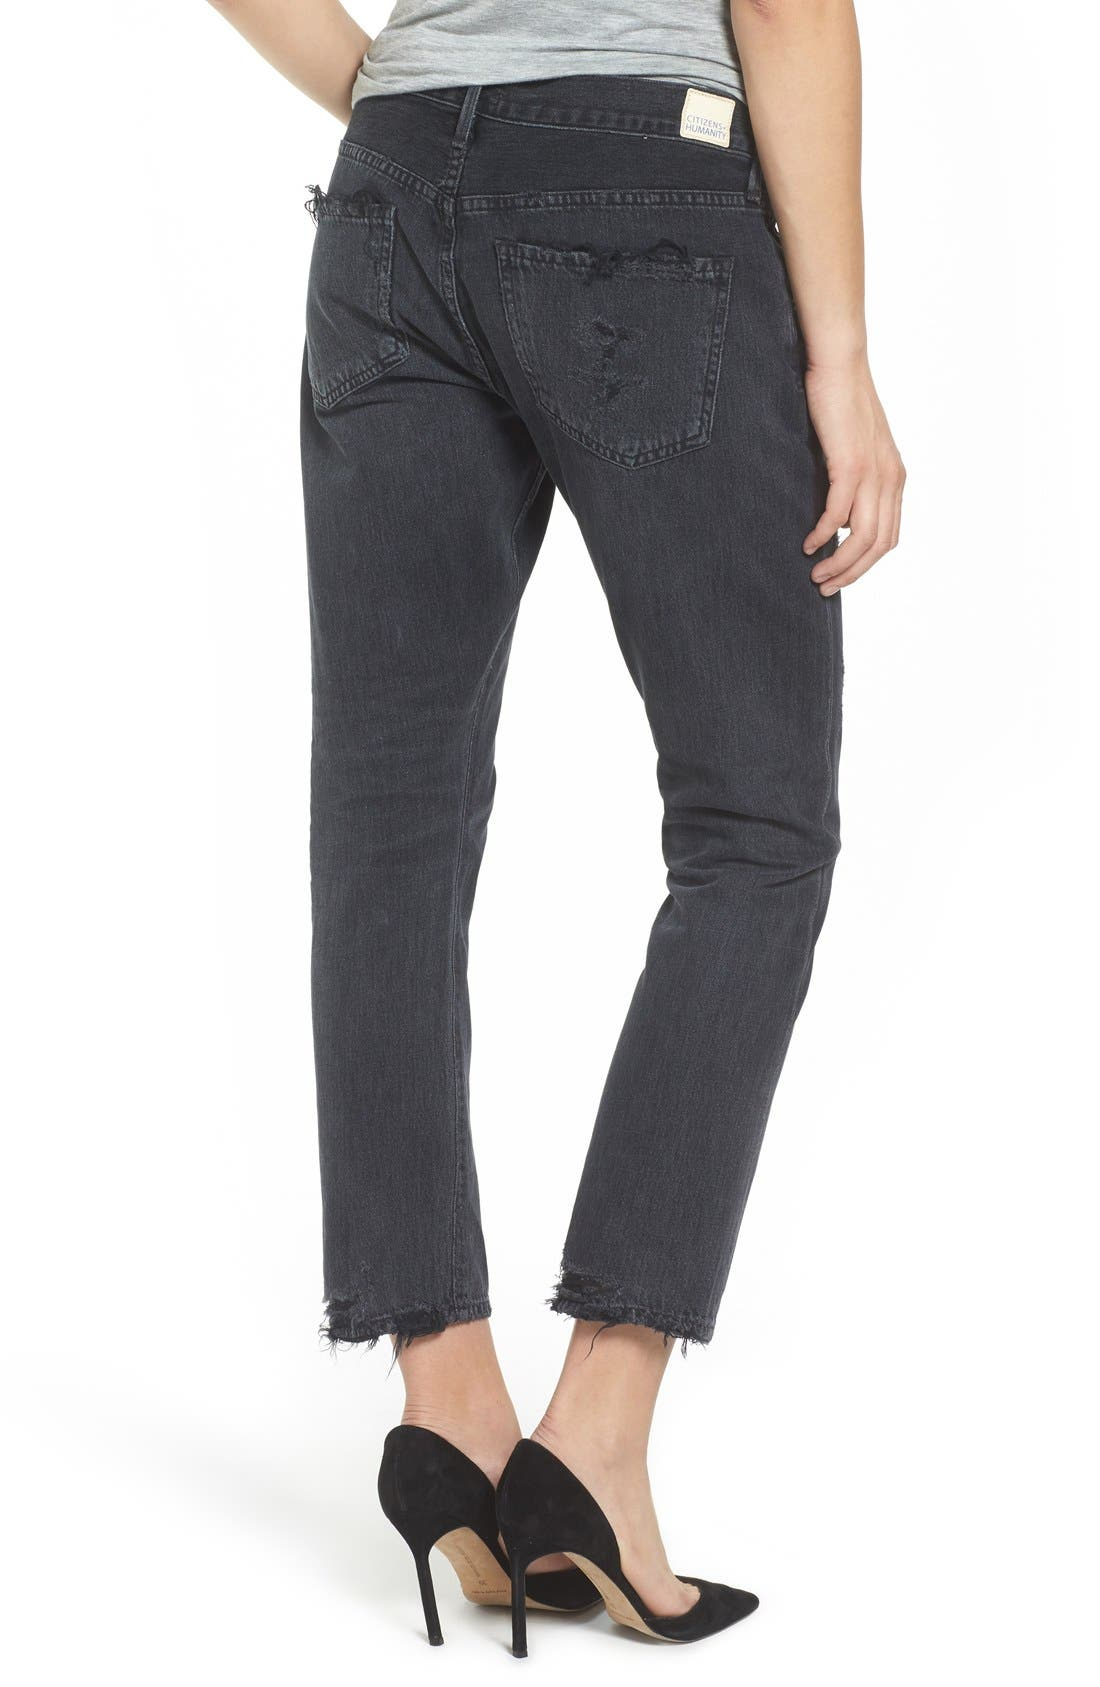 Emerson Slim Boyfriend Jeans,                             Alternate thumbnail 2, color,                             006